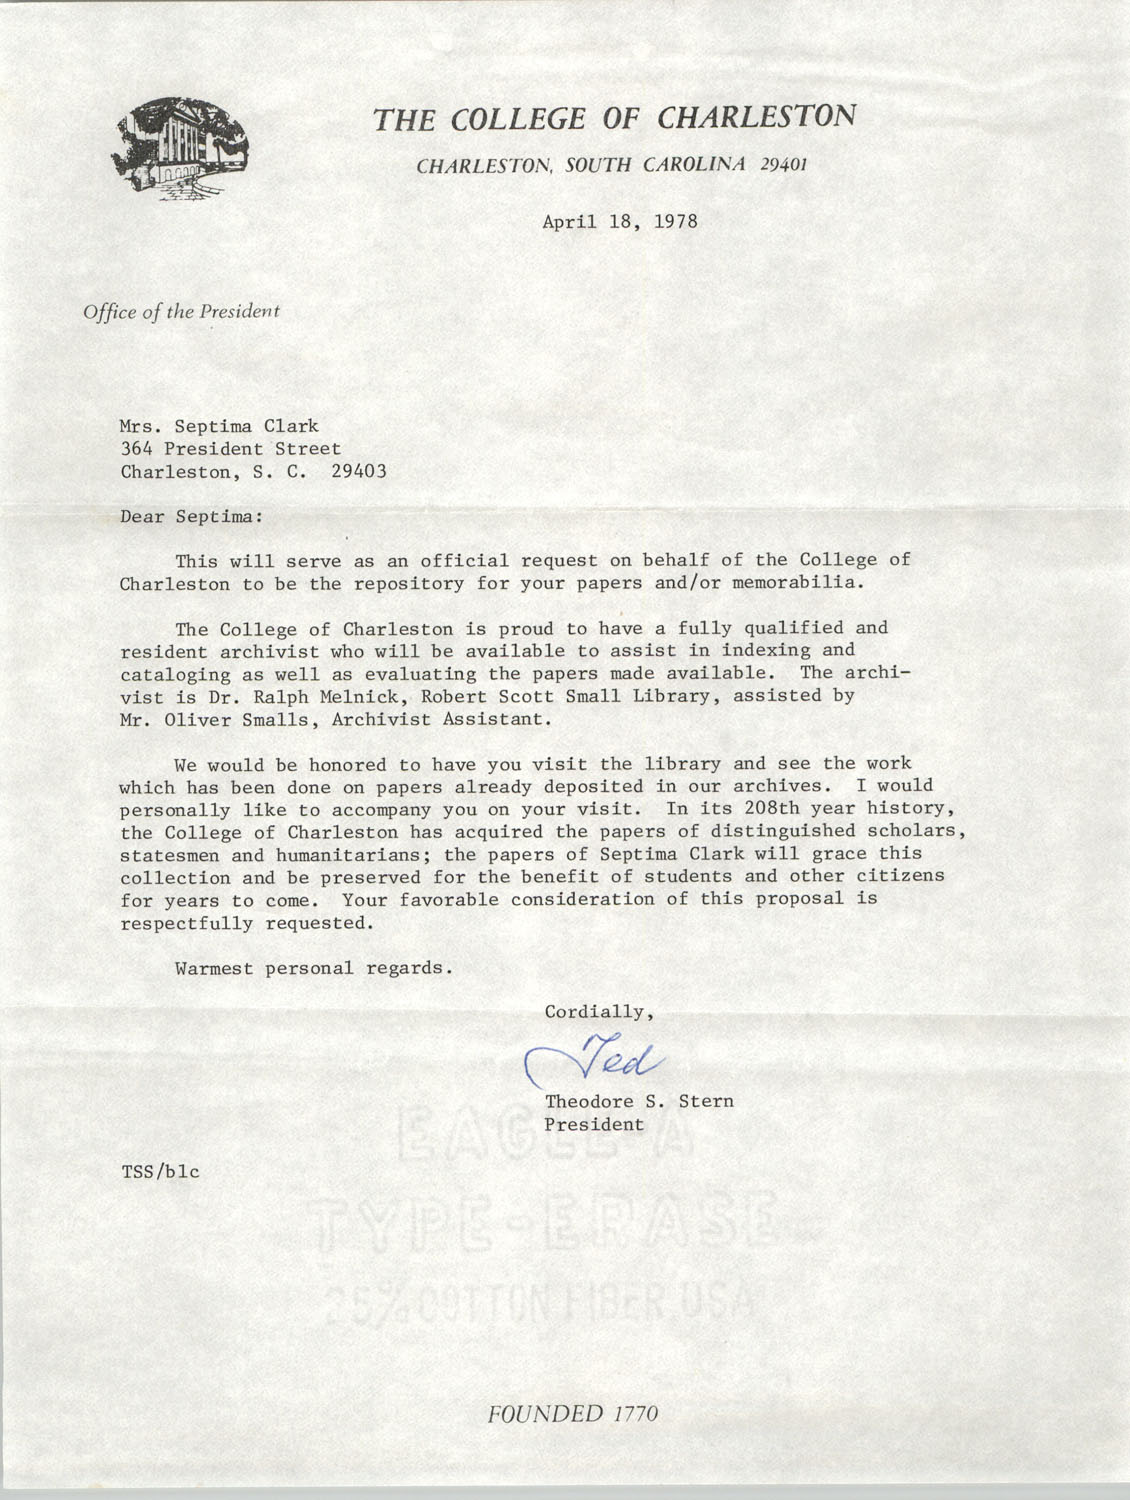 Letter from Theodore S. Stern to Septima P. Clark, April 18, 1978